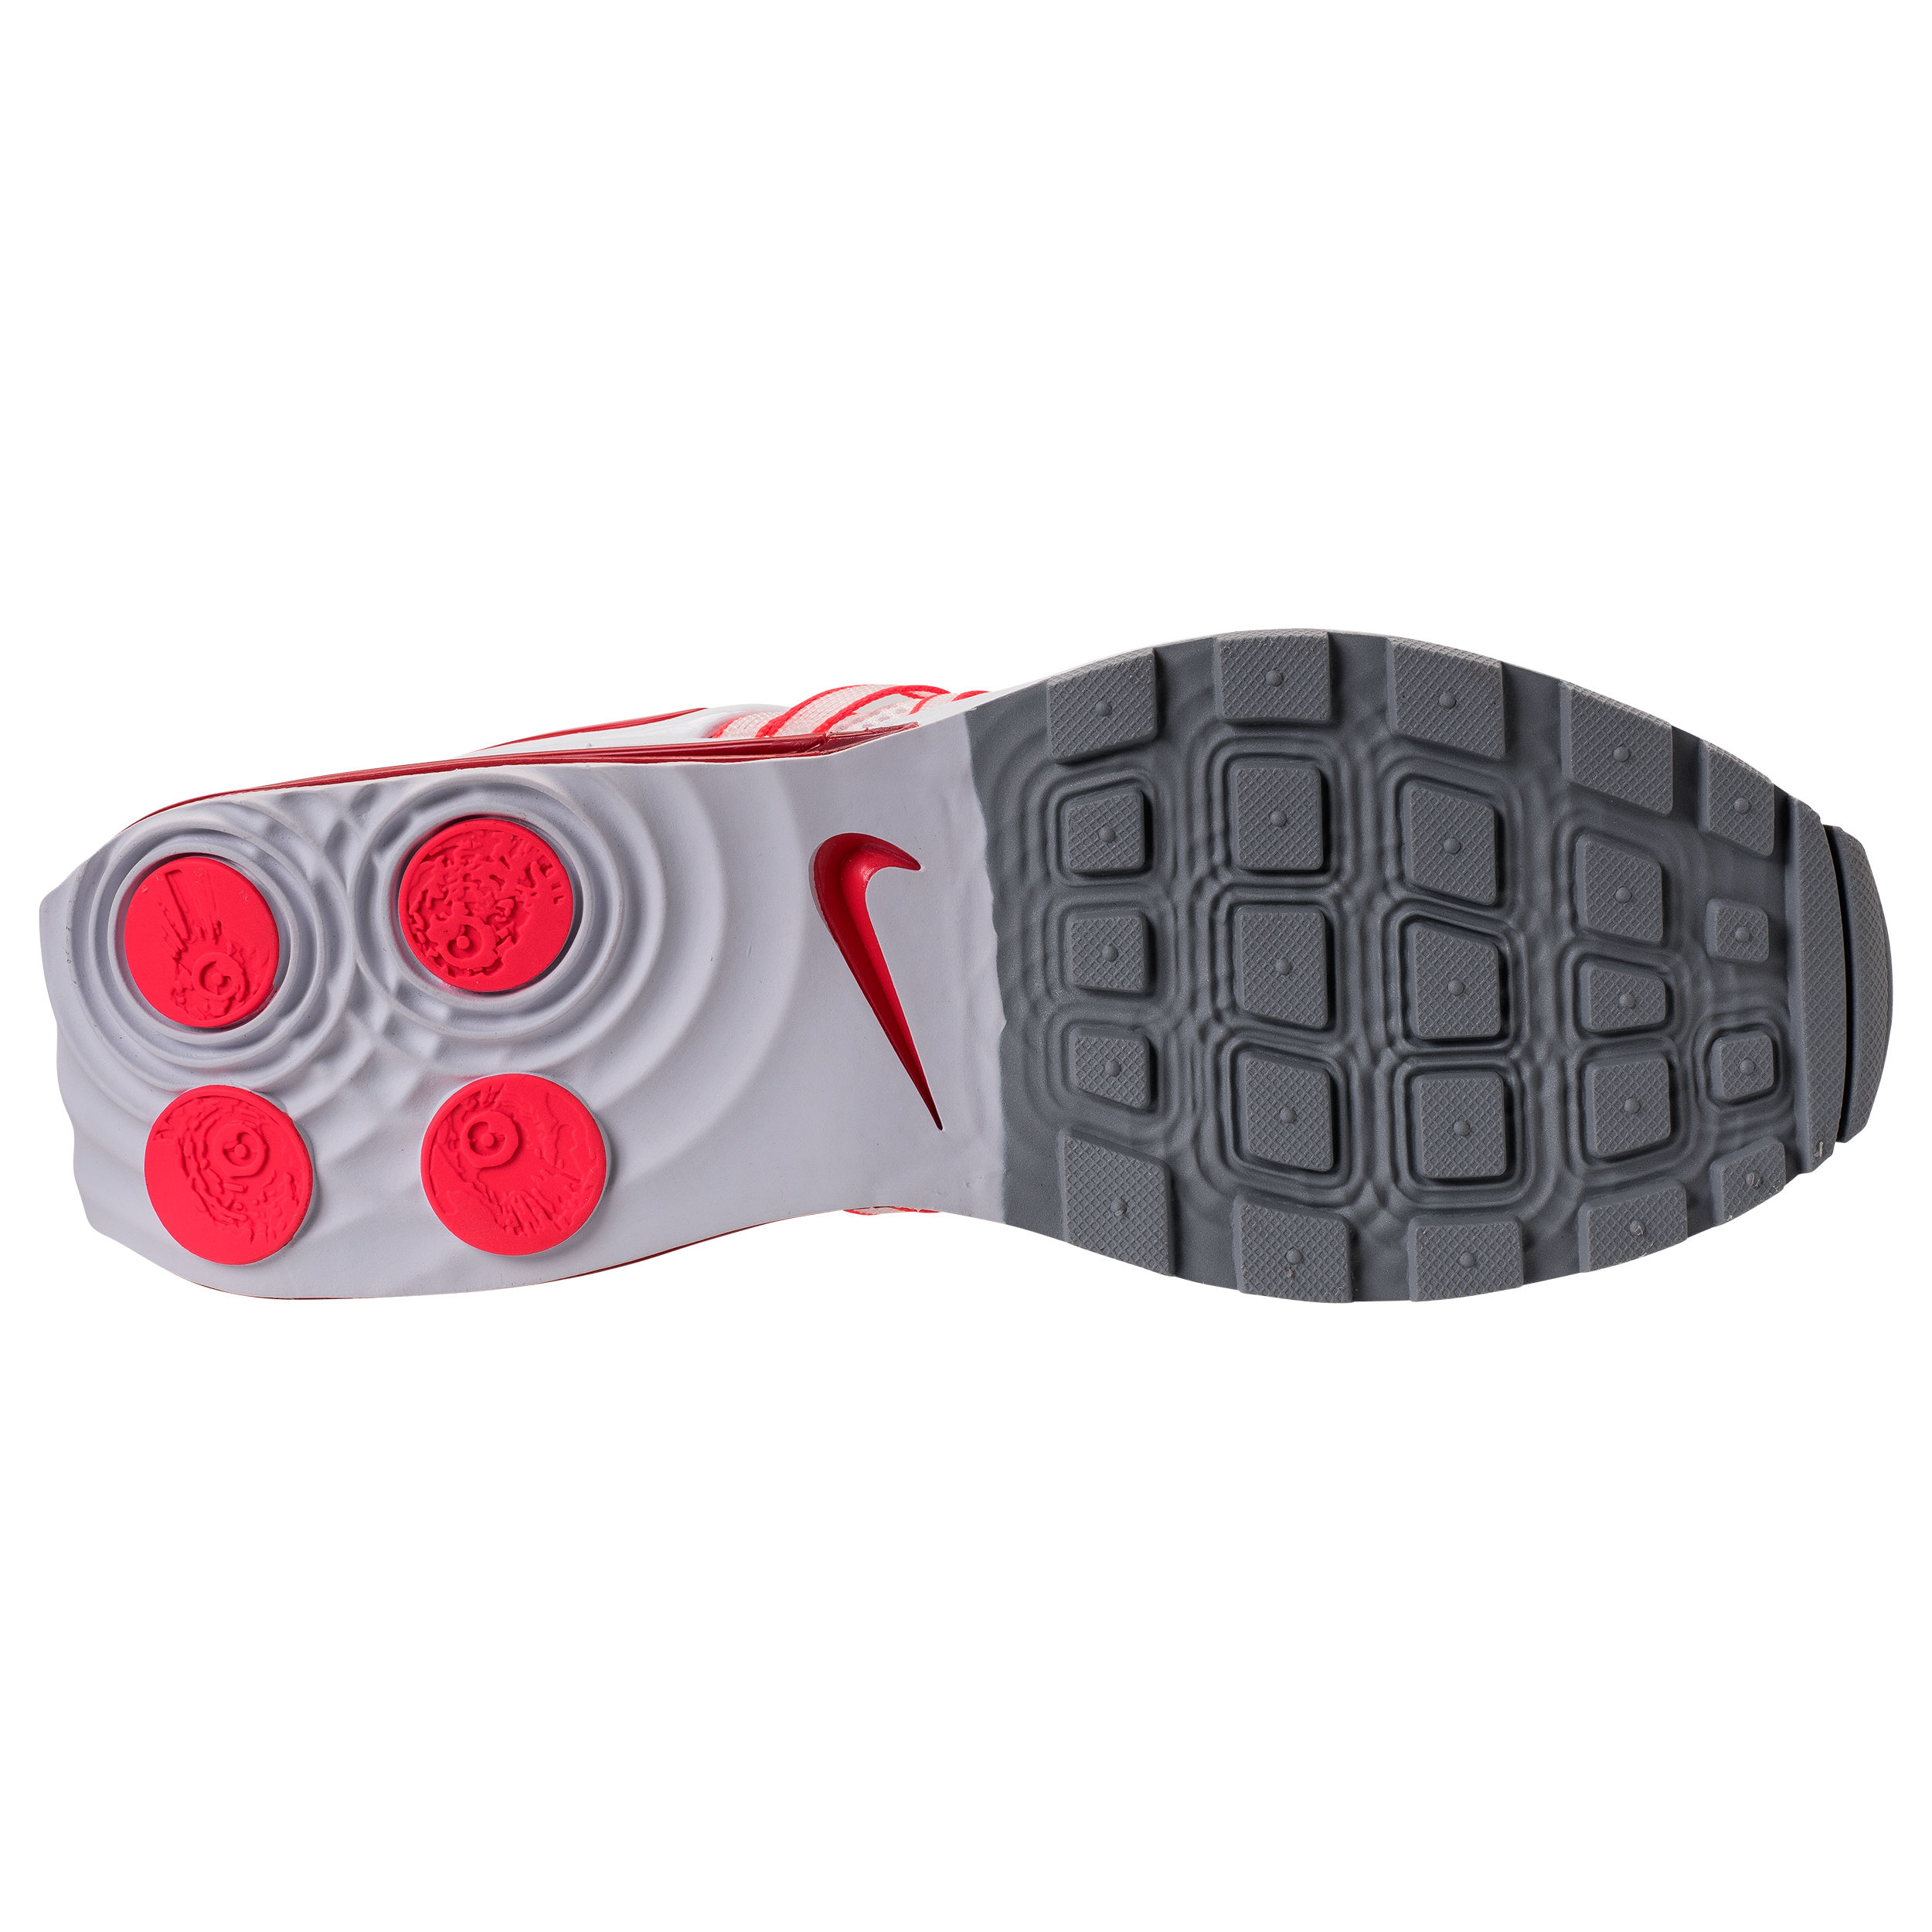 f33b2ed6b06 ... to buy nike shox solar red a2f53 c3853 where to buy nike shox solar red  a2f53 c3853  low price nike shox gravity womens running shoes white  university ...